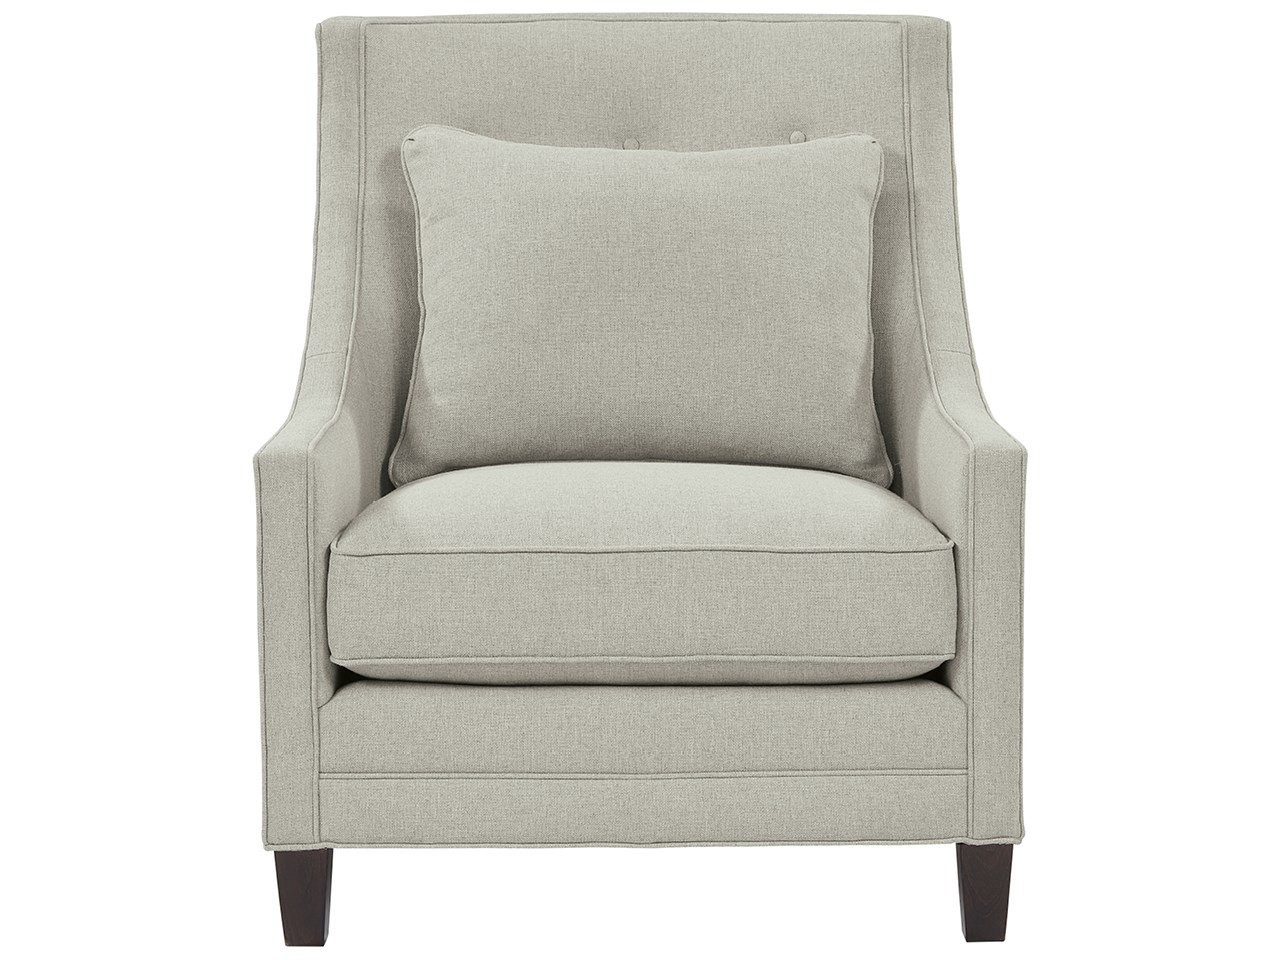 Thomas Chair - Special Order